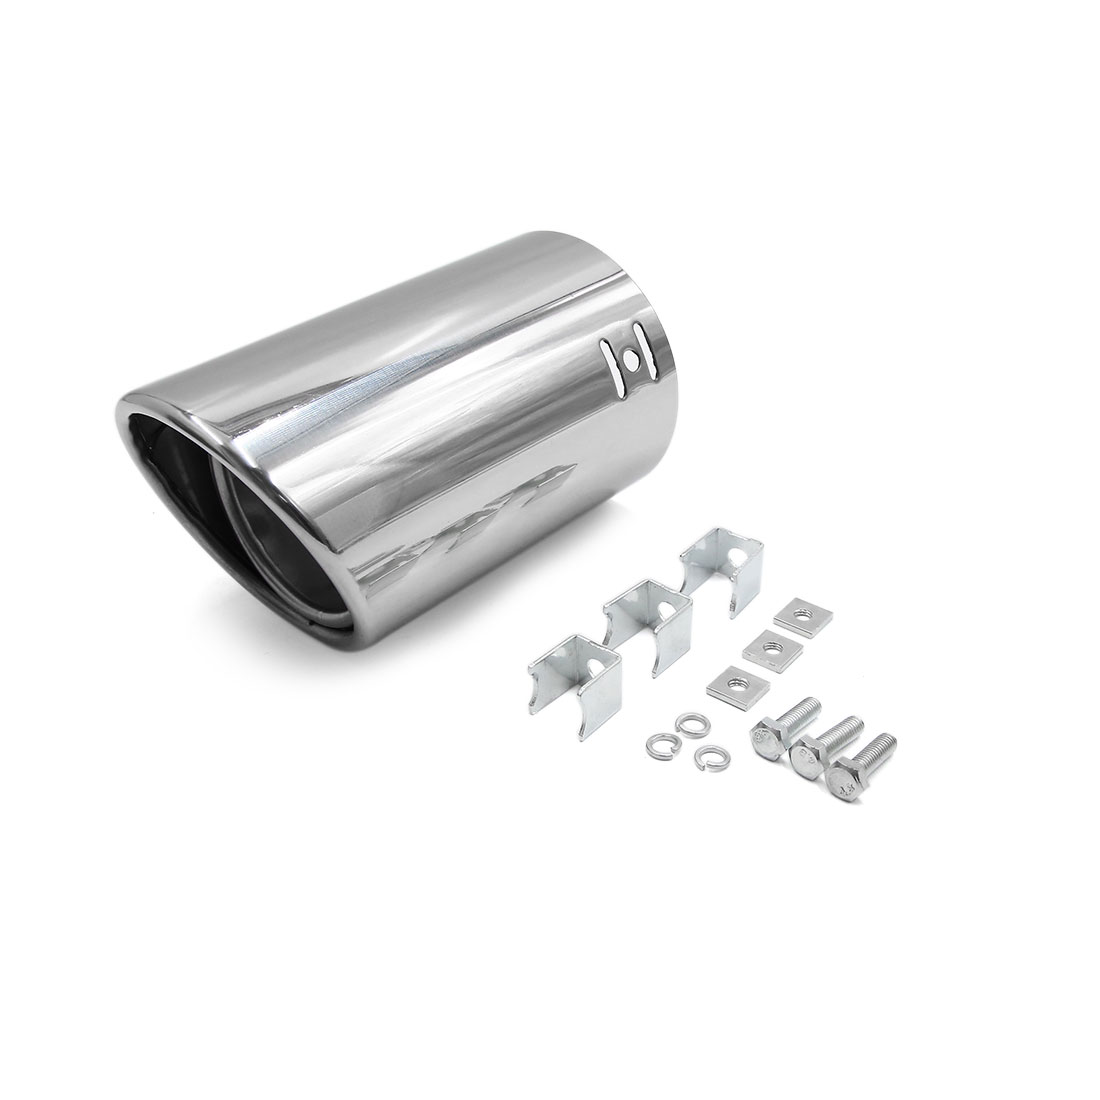 Silver Tone 58mm Inlet Dia Stainless Steel Exhaust Pipe Muffler Tip for Car